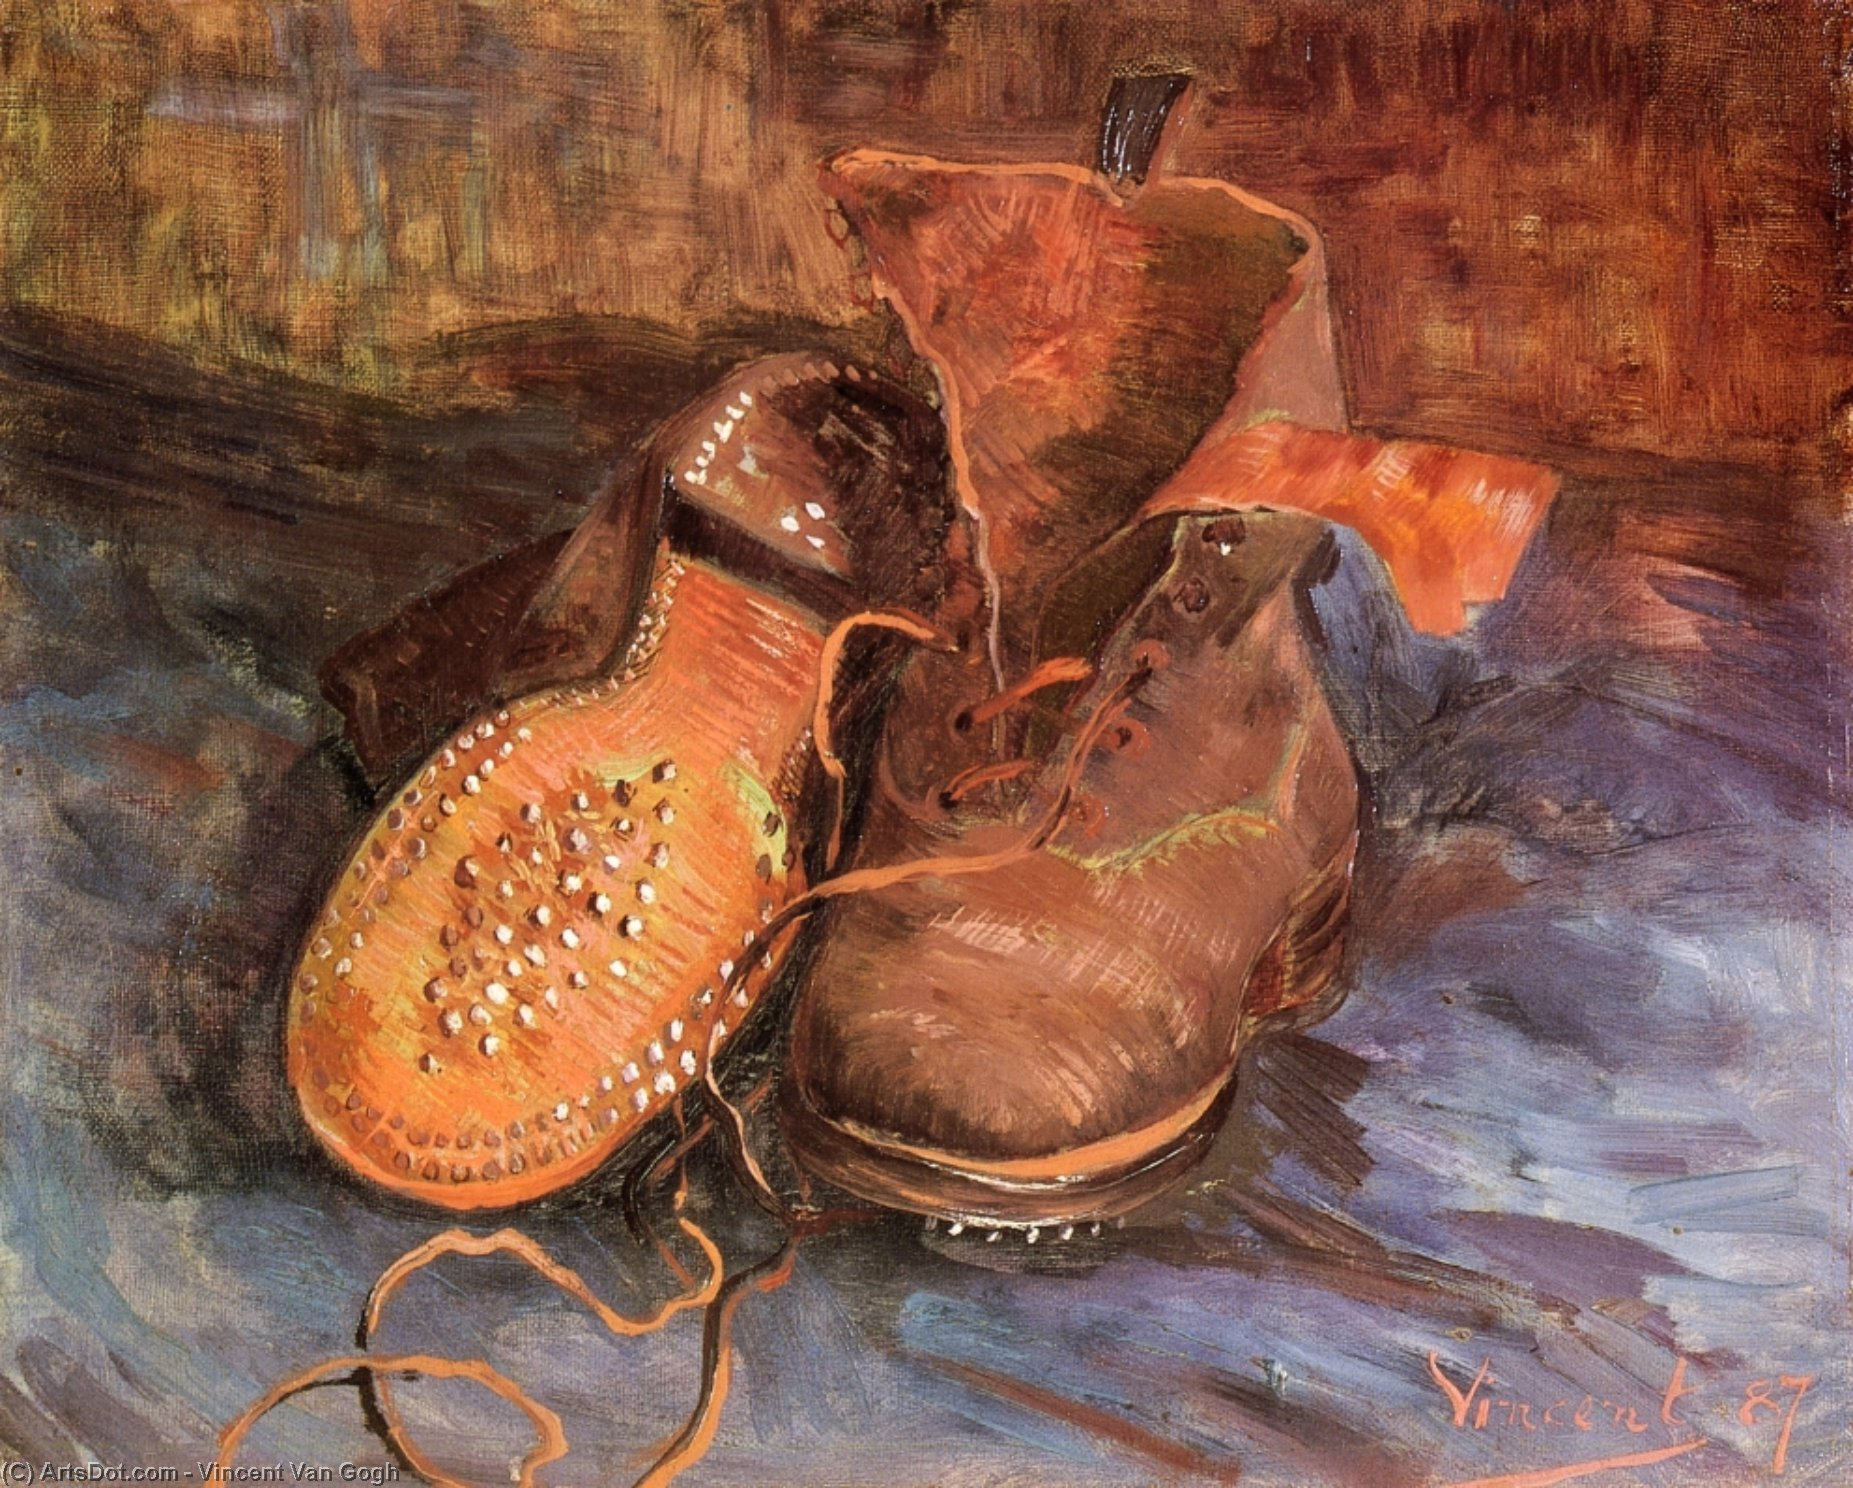 A Pair of Shoes, 1887 by Vincent Van Gogh (1853-1890, Netherlands) | Oil Painting | ArtsDot.com